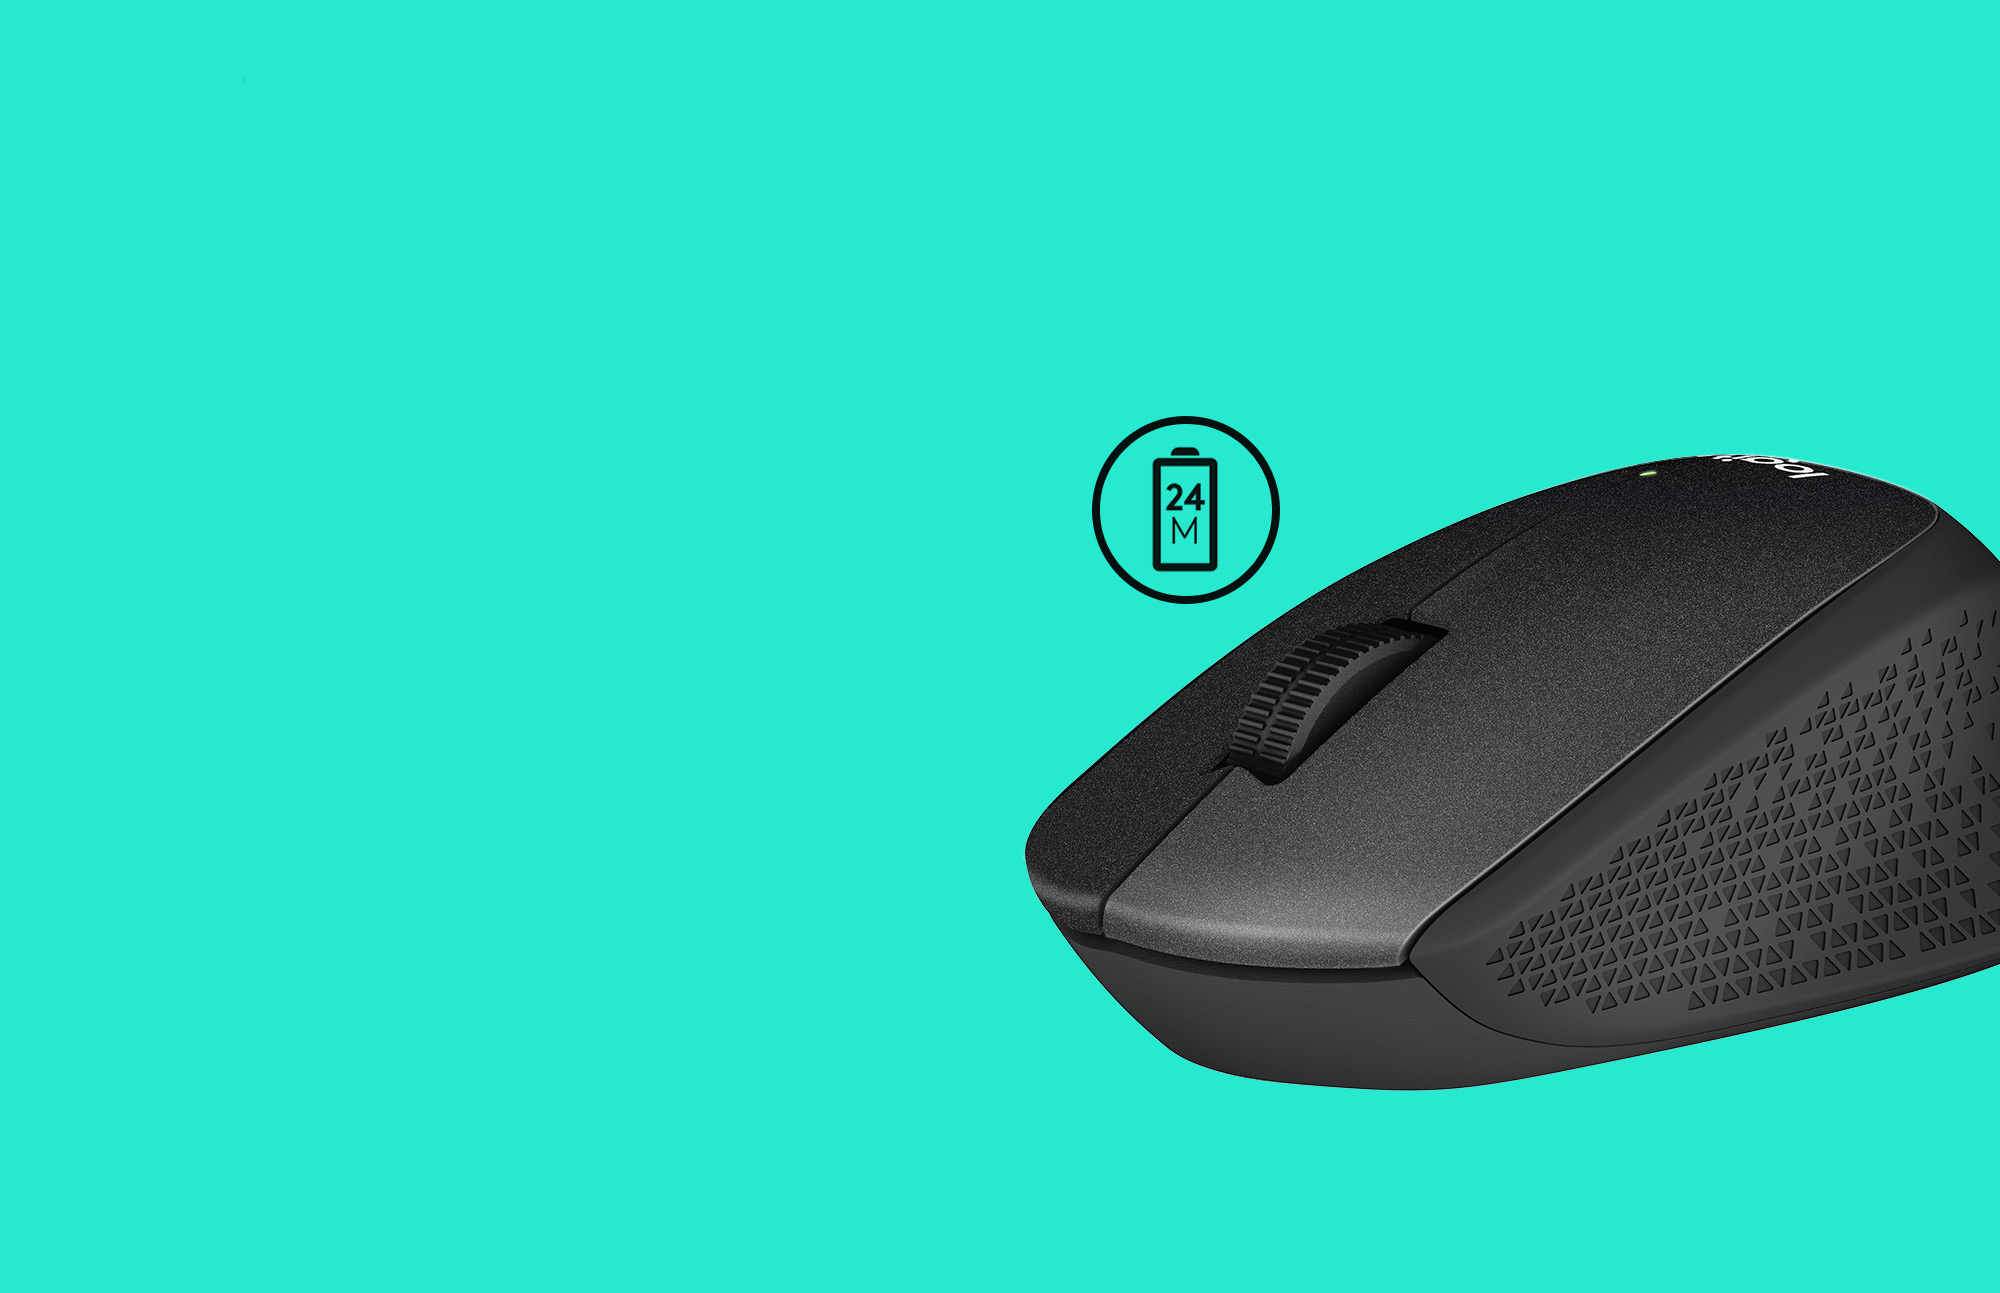 Mouse Wireless Logitech M331